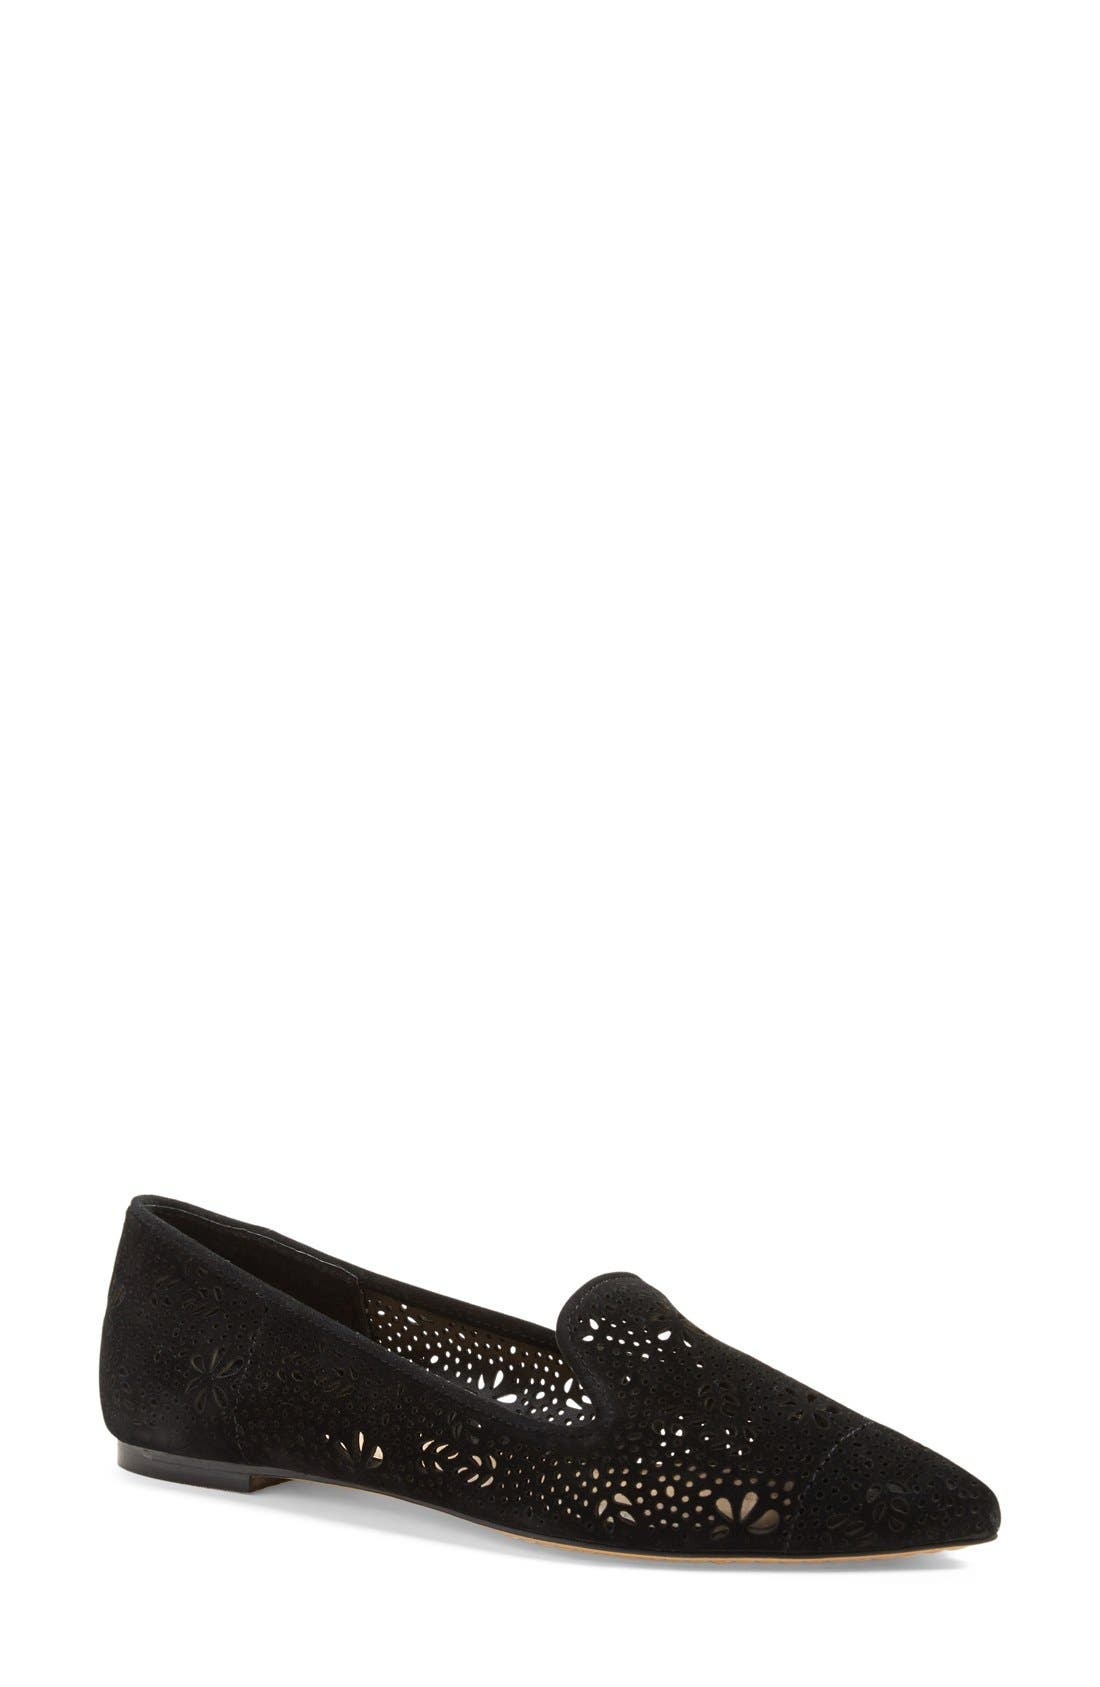 Alternate Image 1 Selected - Vince Camuto 'Earina' Perforated Flat (Women) (Nordstrom Exclusive)